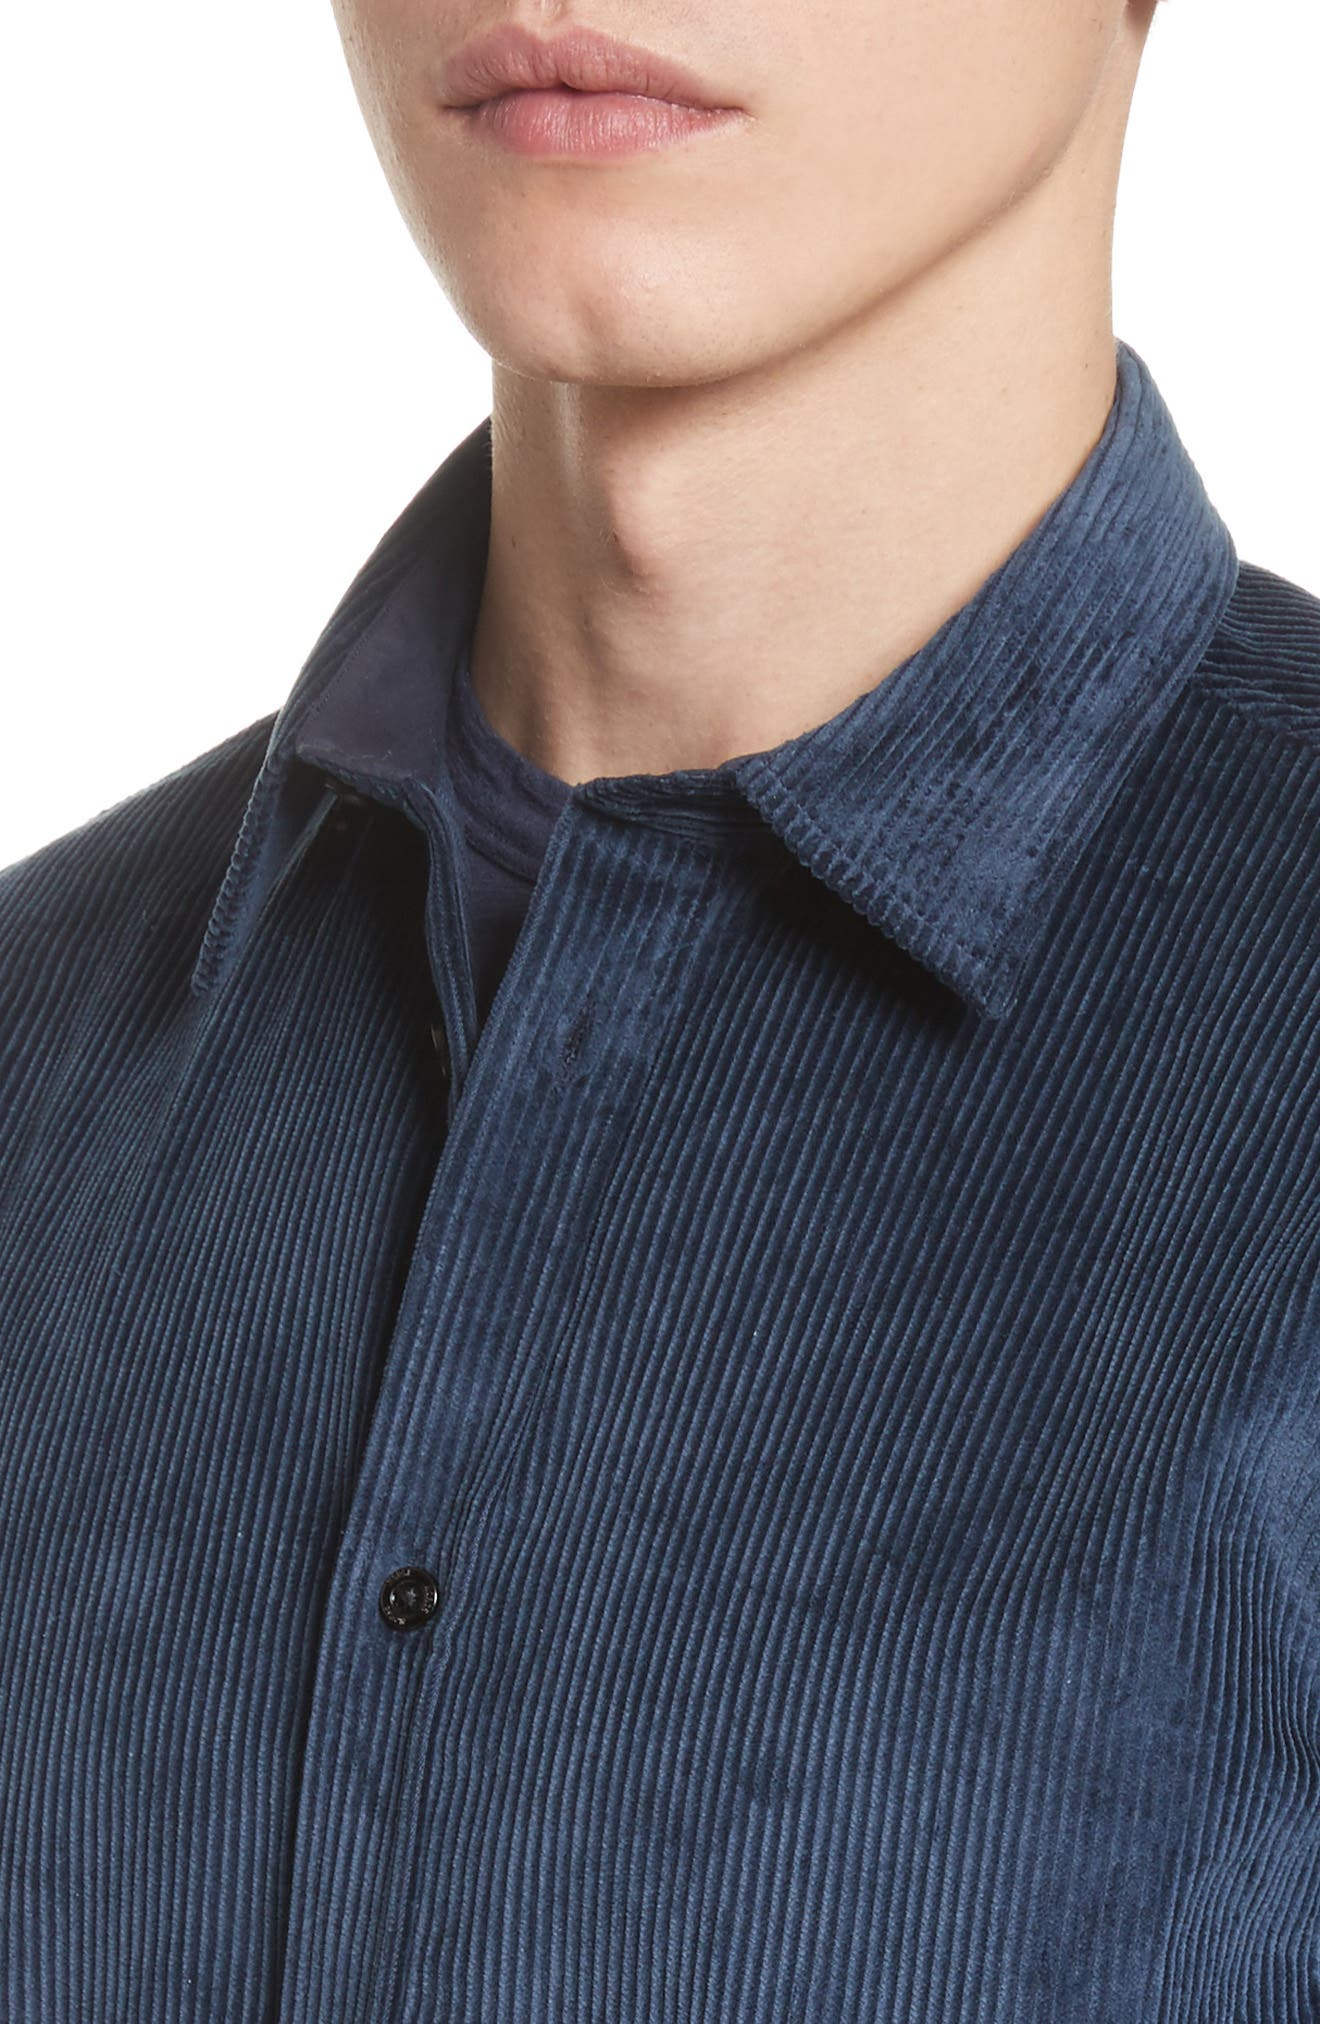 Hans Corduroy Shirt,                             Alternate thumbnail 2, color,                             Petrol Blue